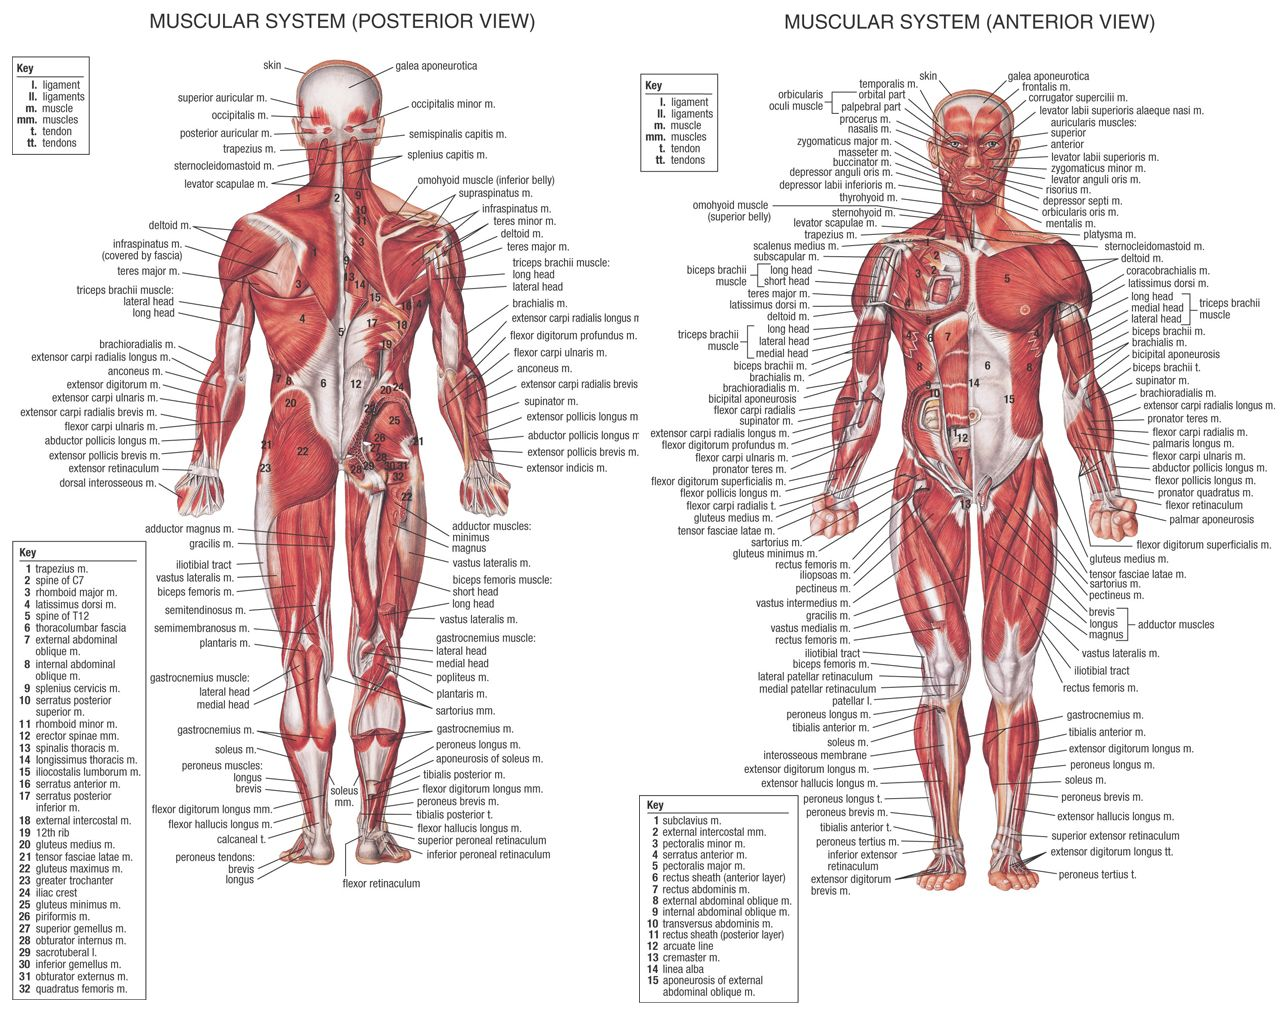 the human body muscles | human body muscles, human anatomy and anatomy, Muscles